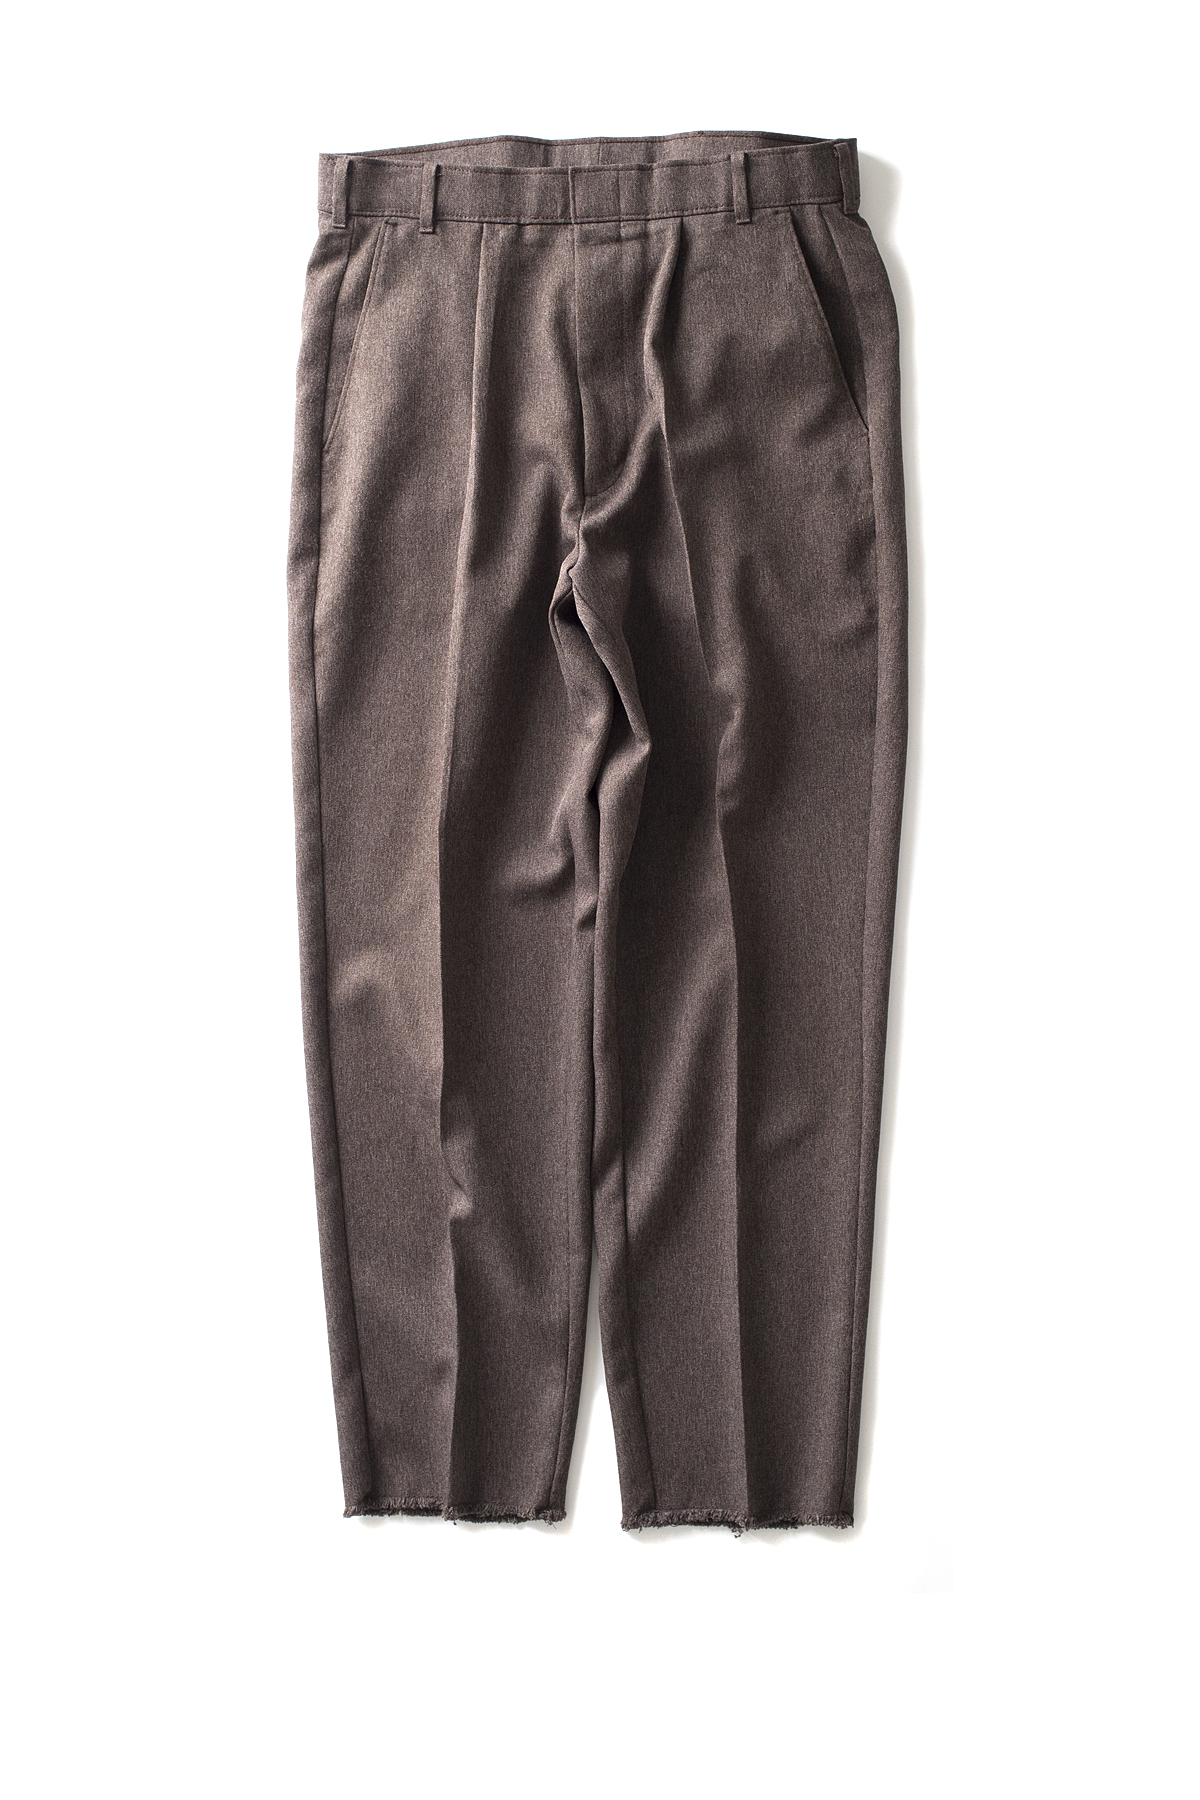 HEXICO : Deformer Ex. Action Slacks 1-Tuck Trousers (Brown)